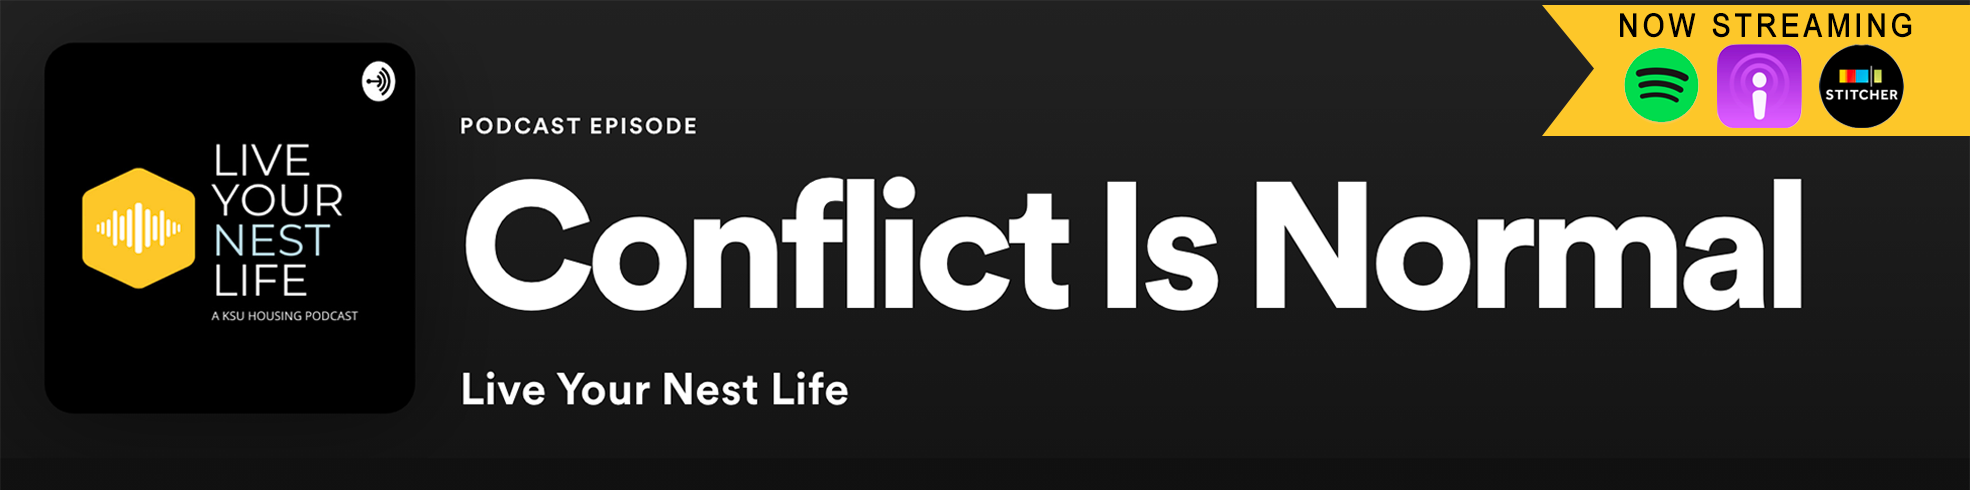 New Podcast Alert: Conflict is Normal